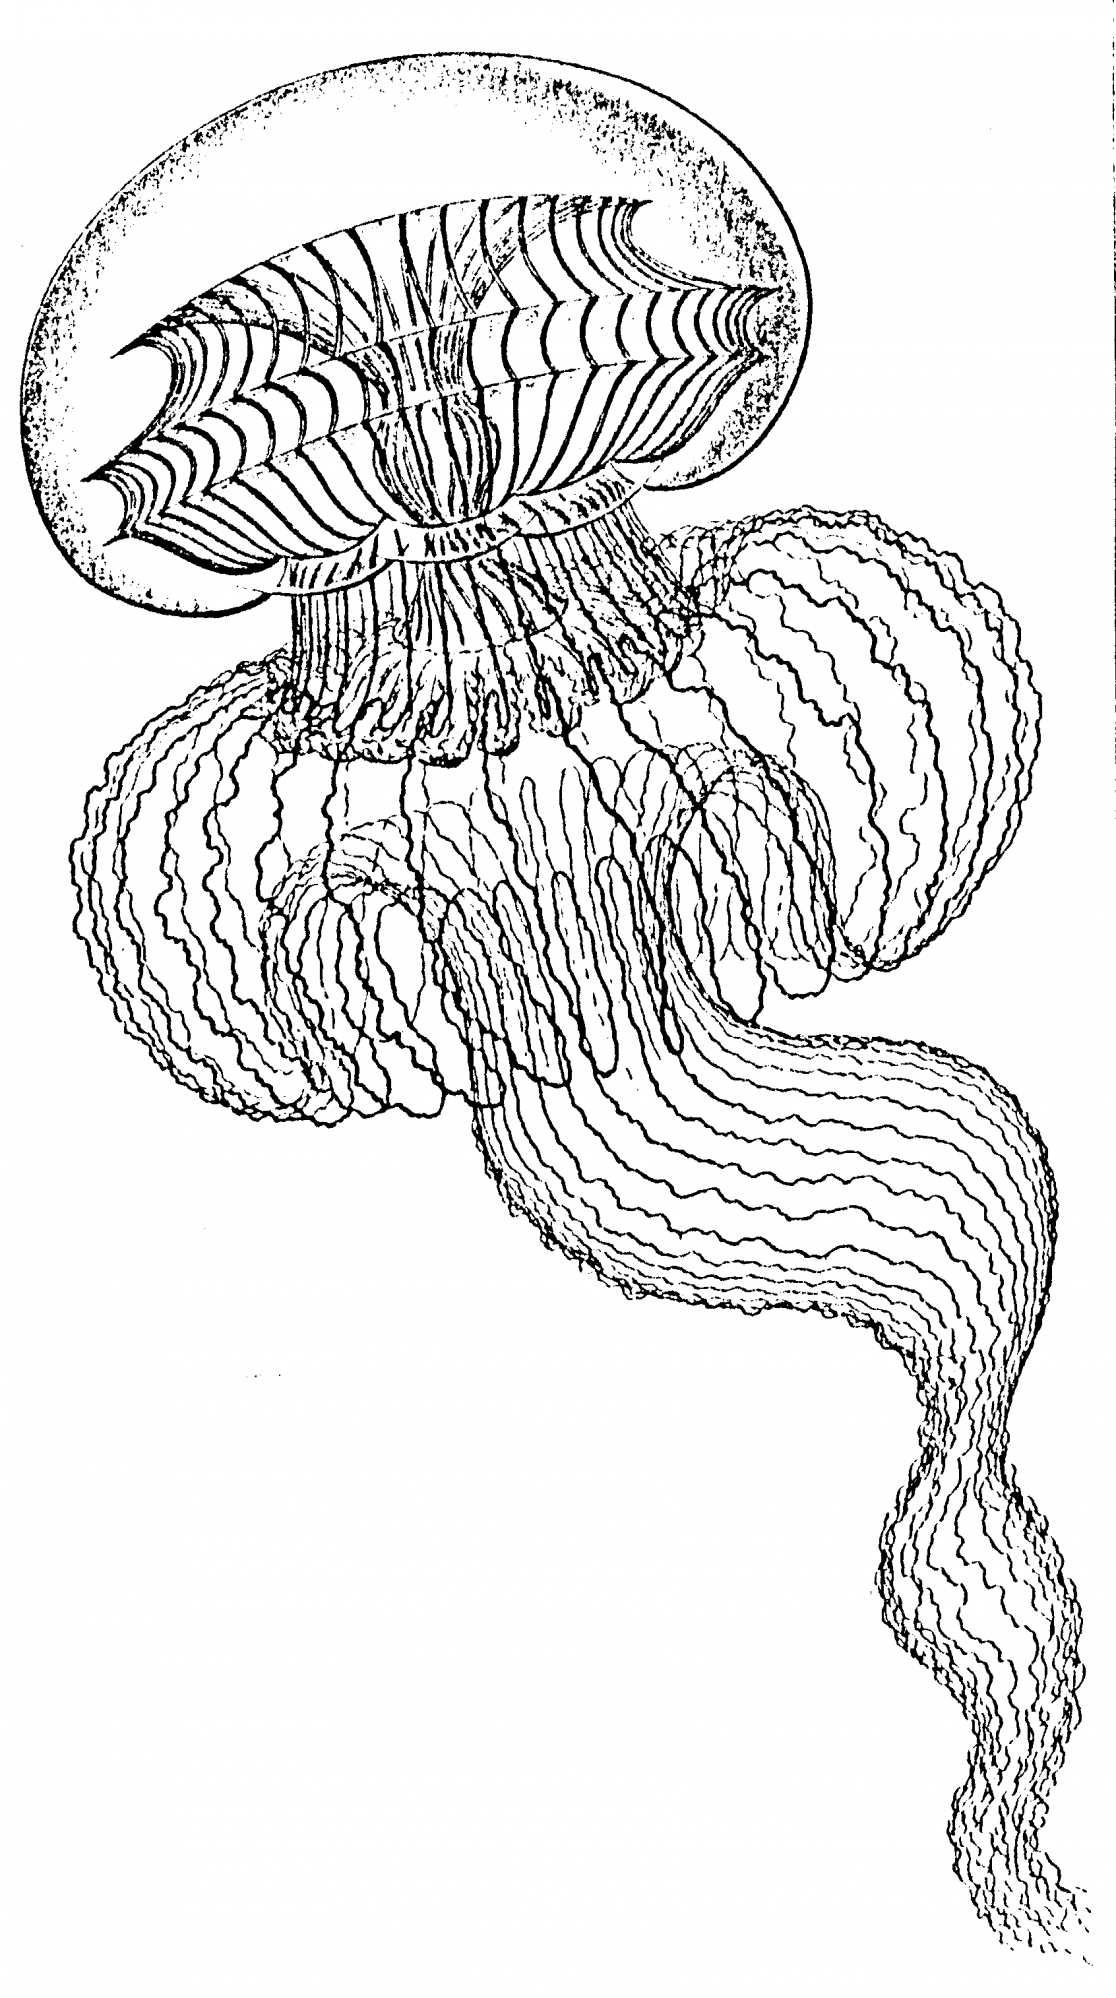 Ernst Haeckel Jelly drawing